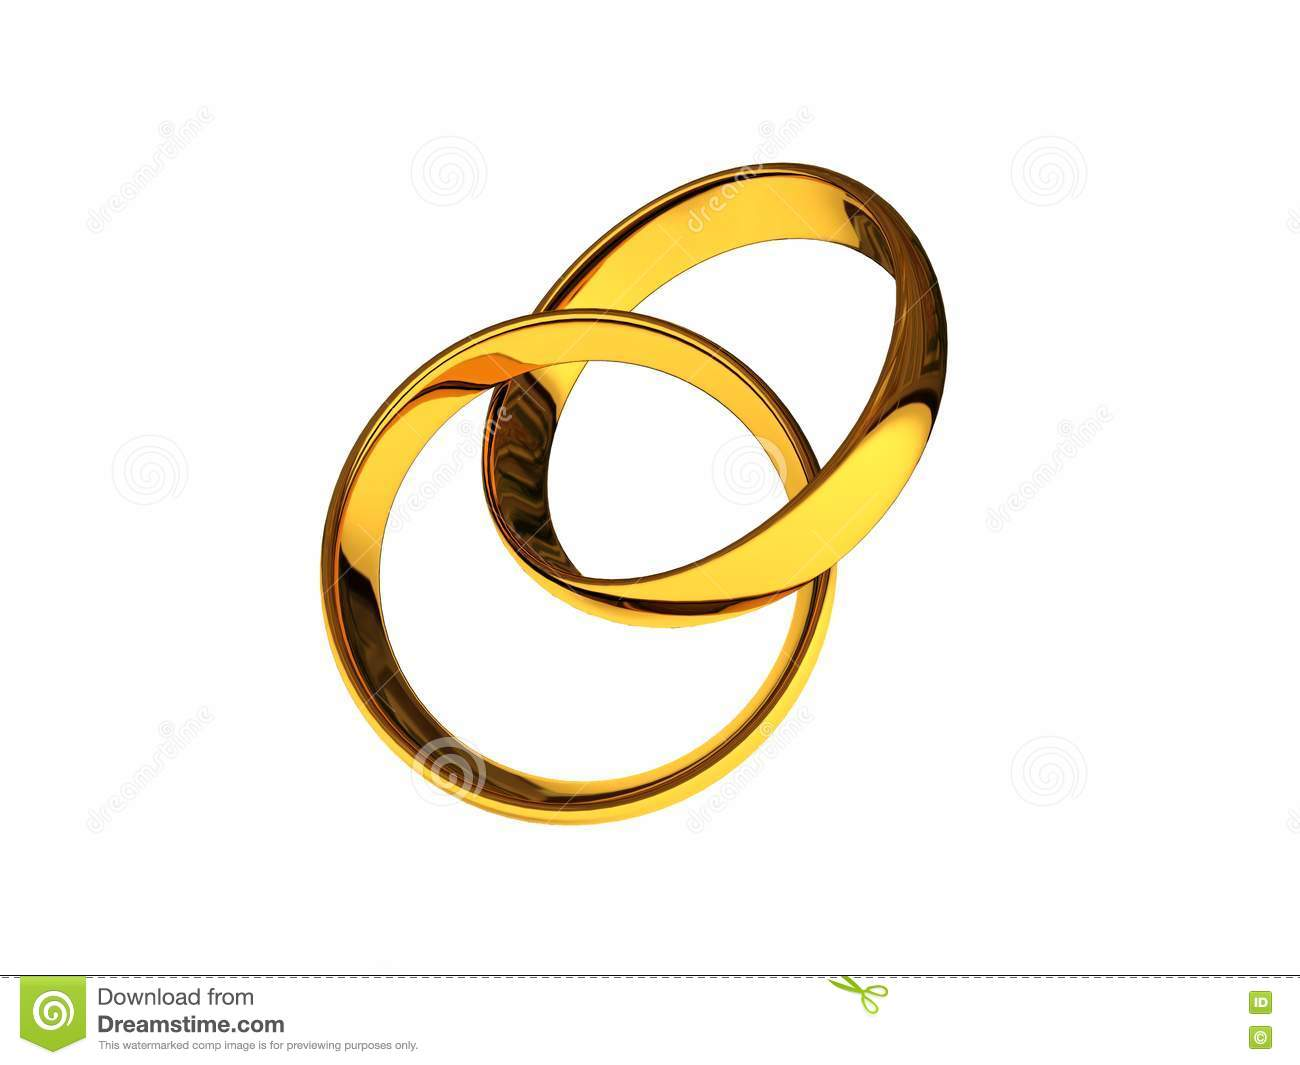 interlocking wedding rings hd photo - Interlocking Wedding Rings